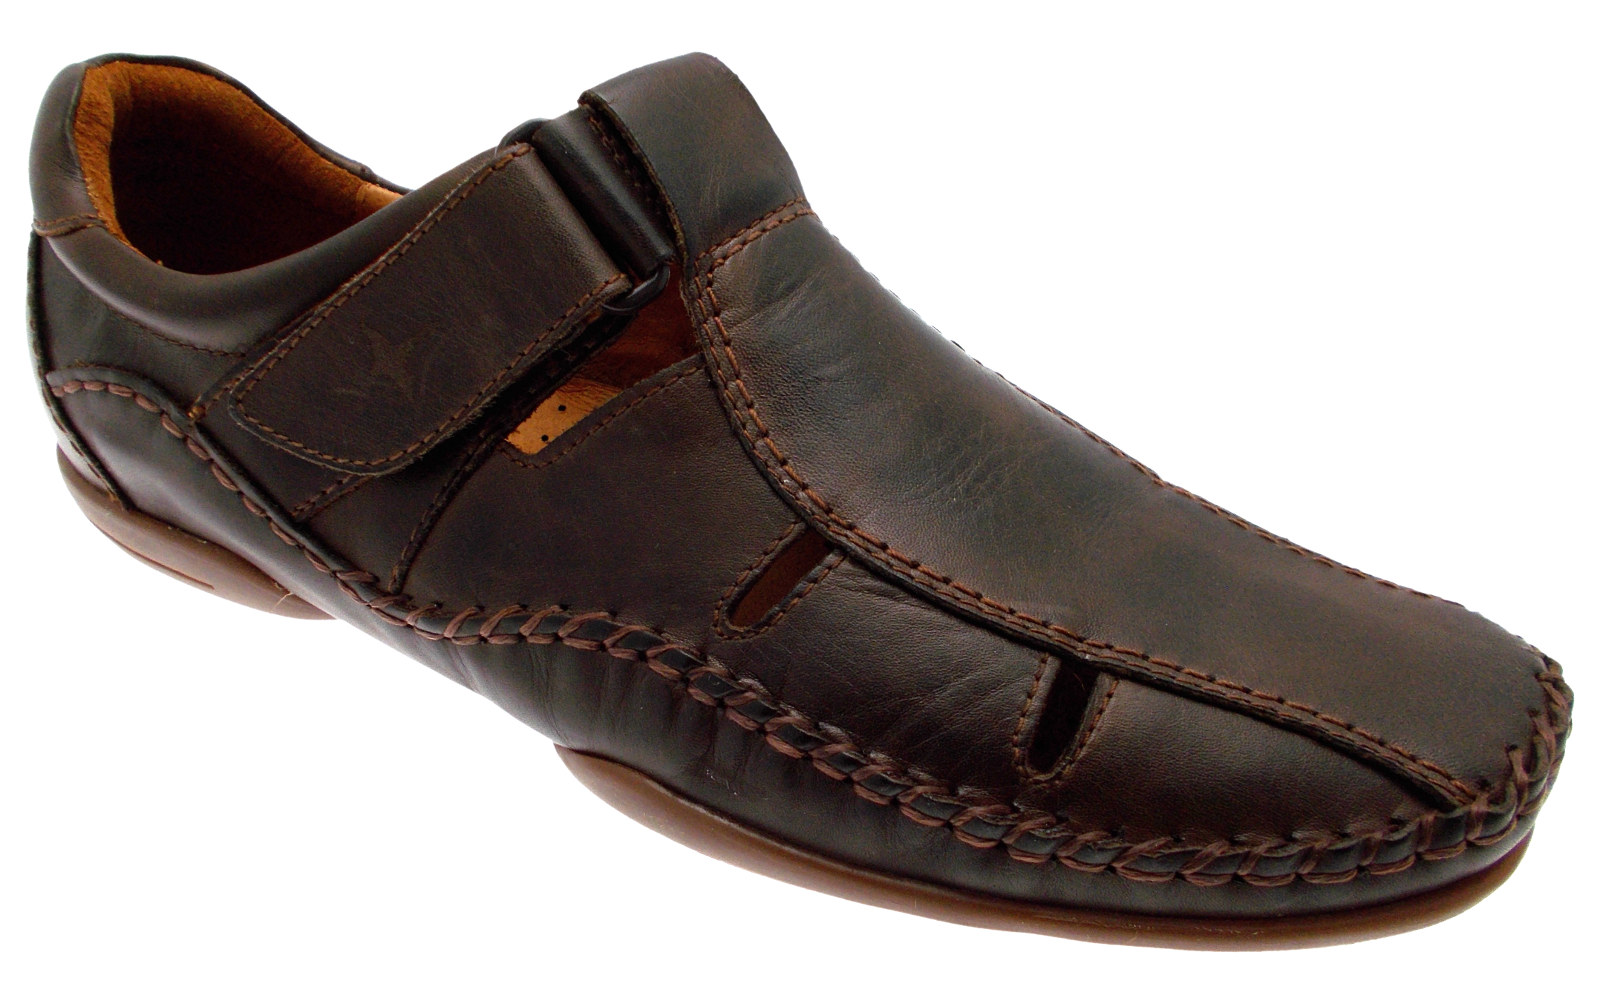 shoes sandal brown leather Velcro Article 03A-6545 Pikolinos